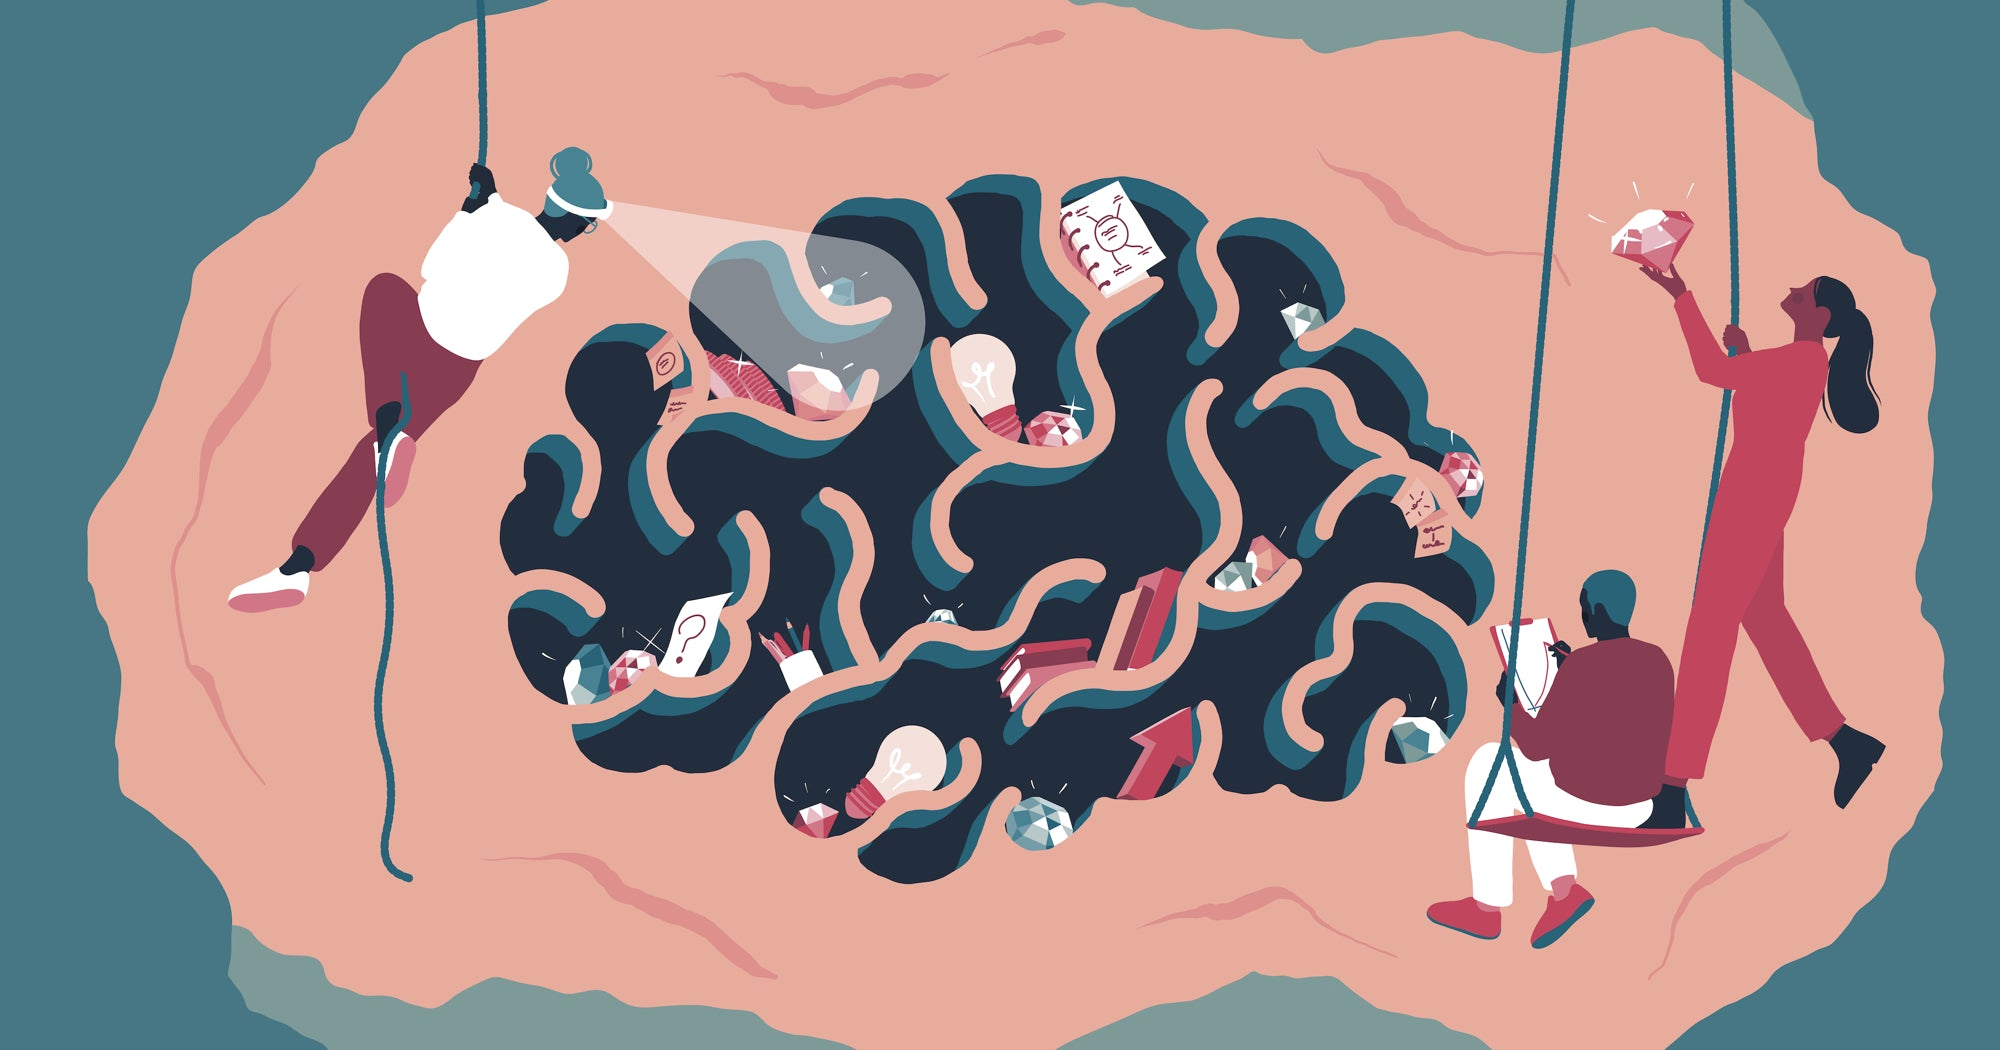 Illustration of people spelunking in a cave shaped like a human brain full of little treasures